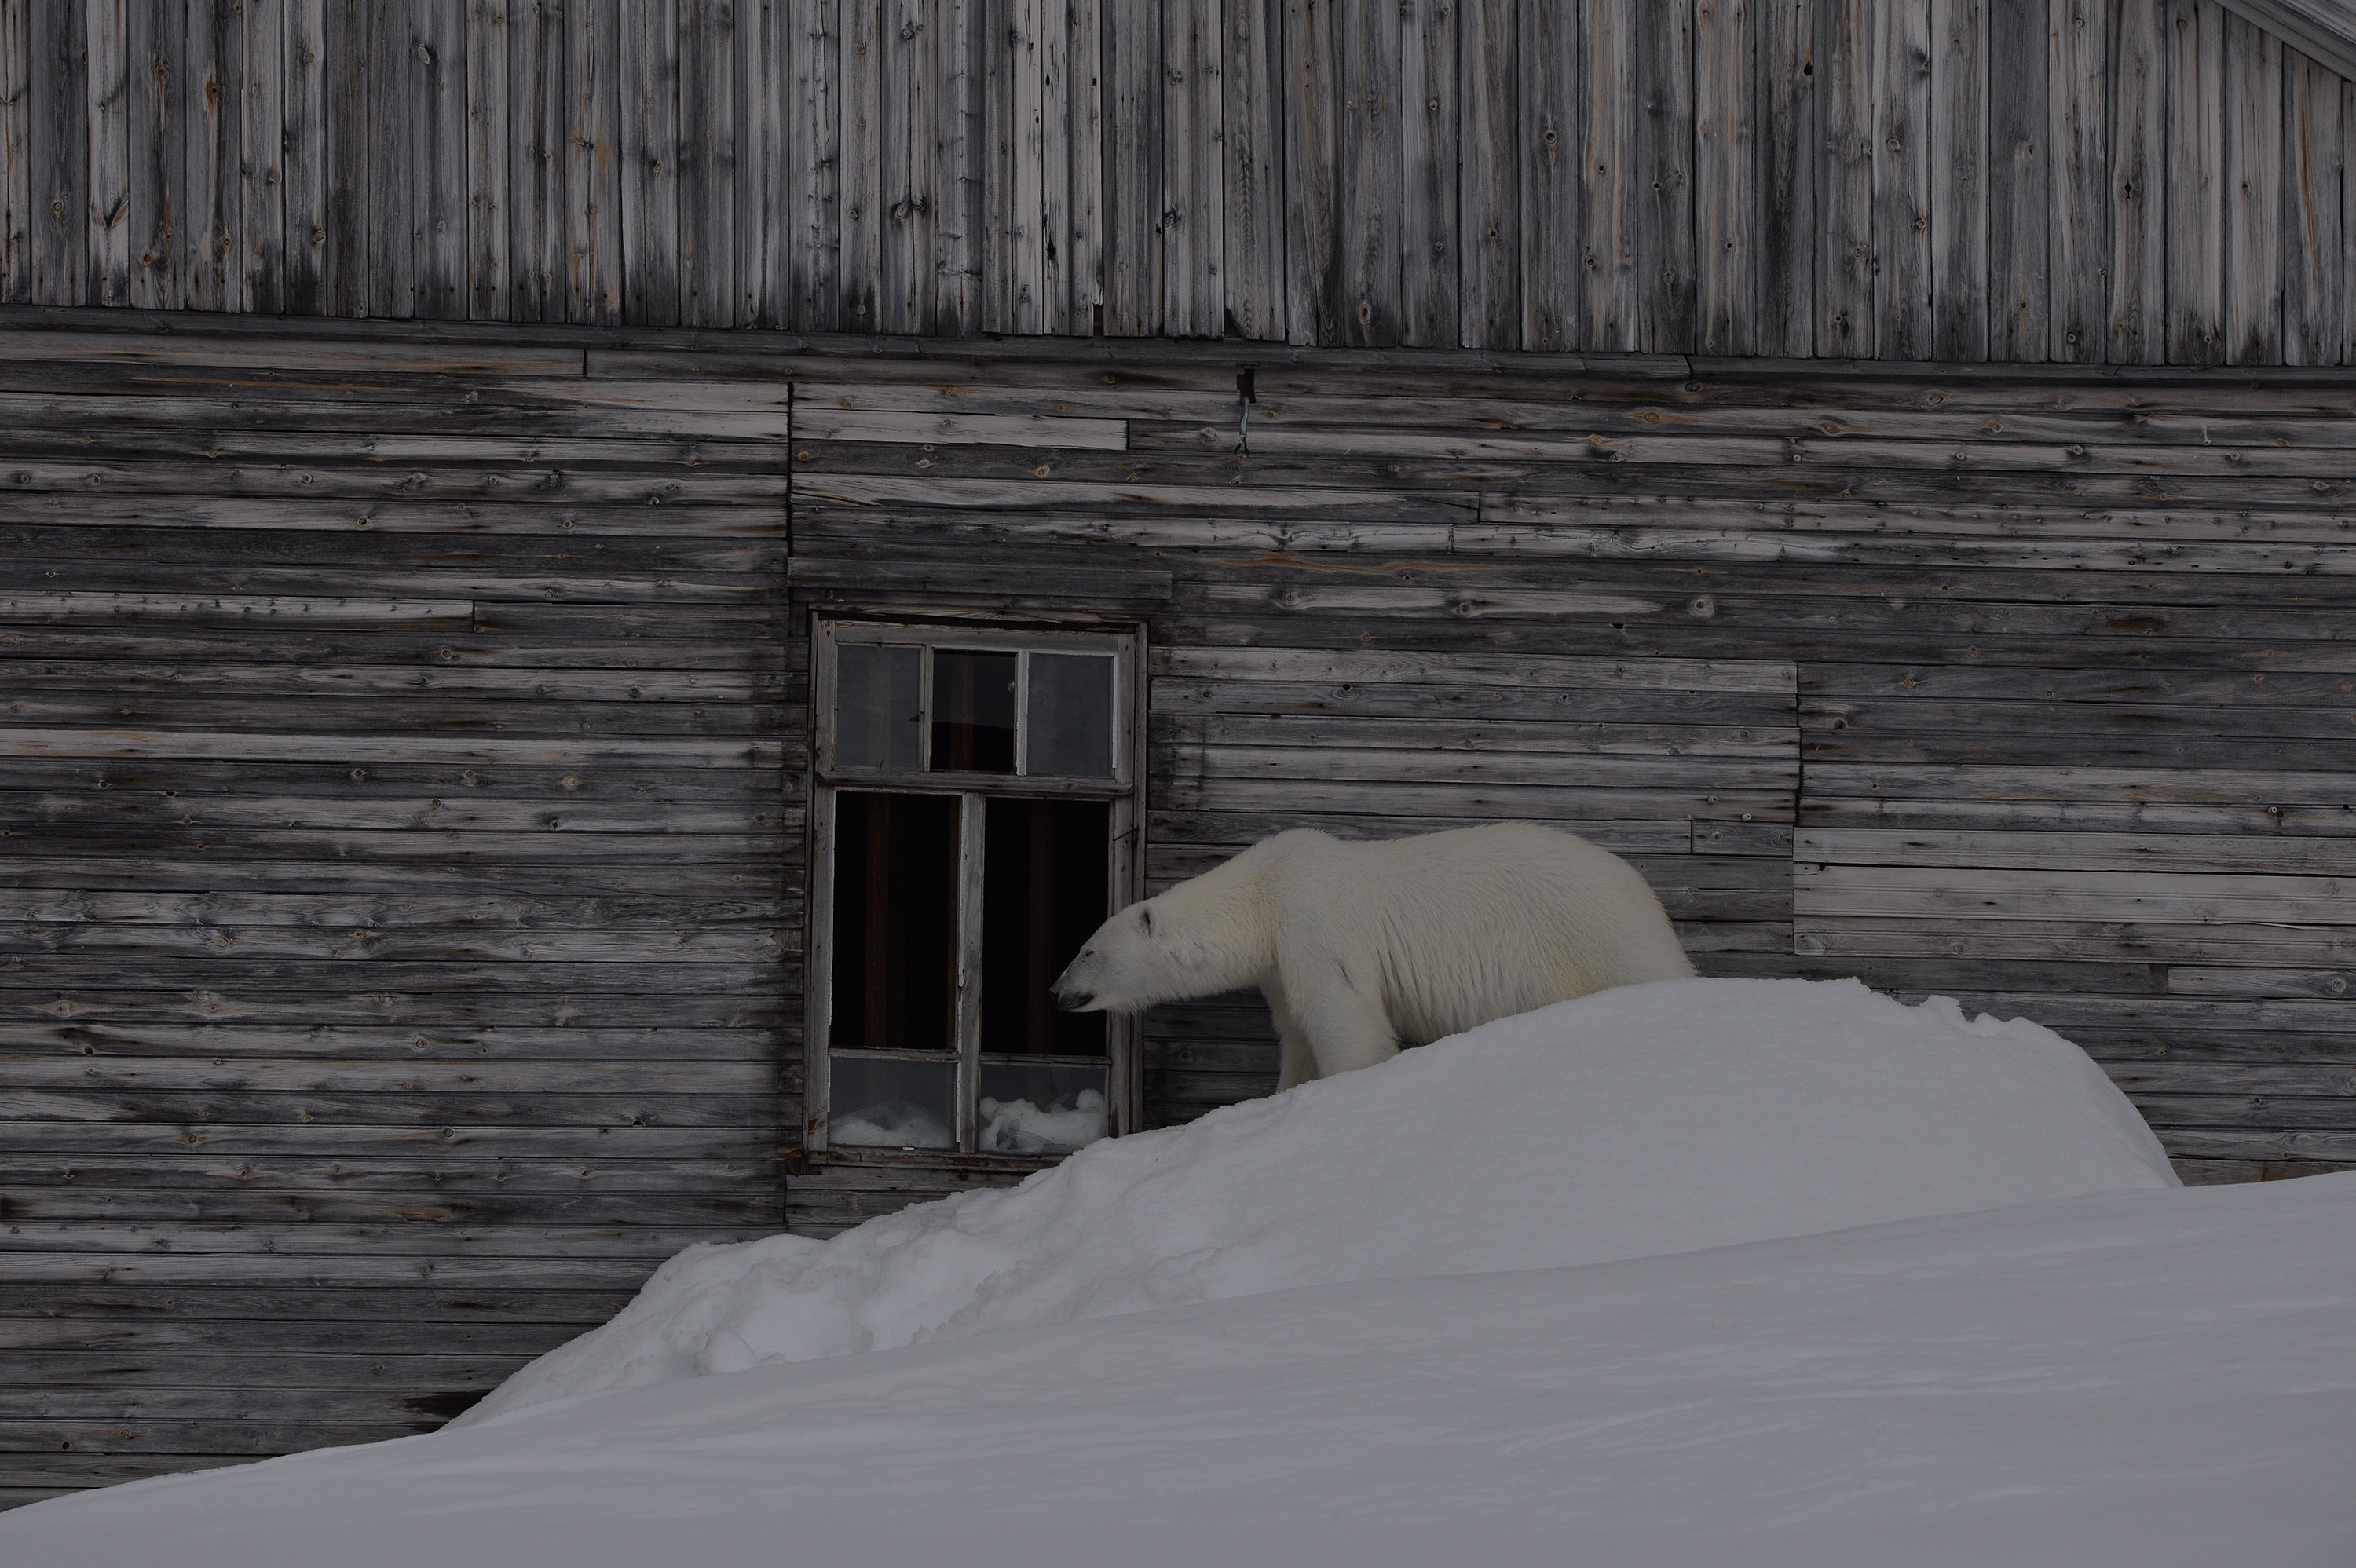 A polar bear looks into the window of the polar station, Hooker Island, Franz Josef Land, Russian Arctic National Park